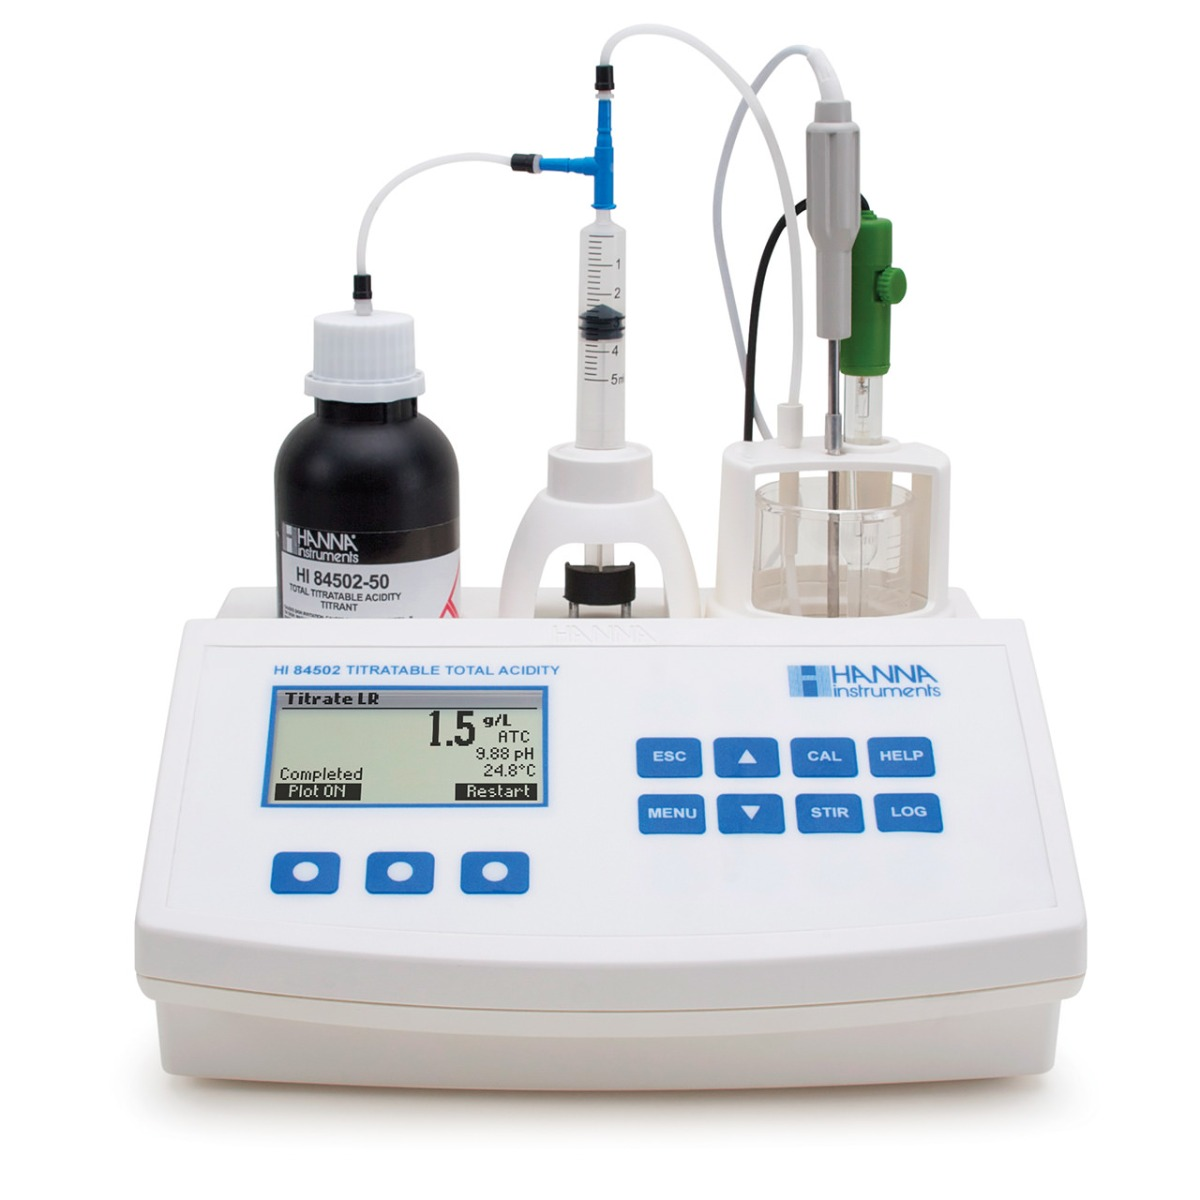 Mini-Titrator for Measuring Titratable Acidity in Wine - HI84502